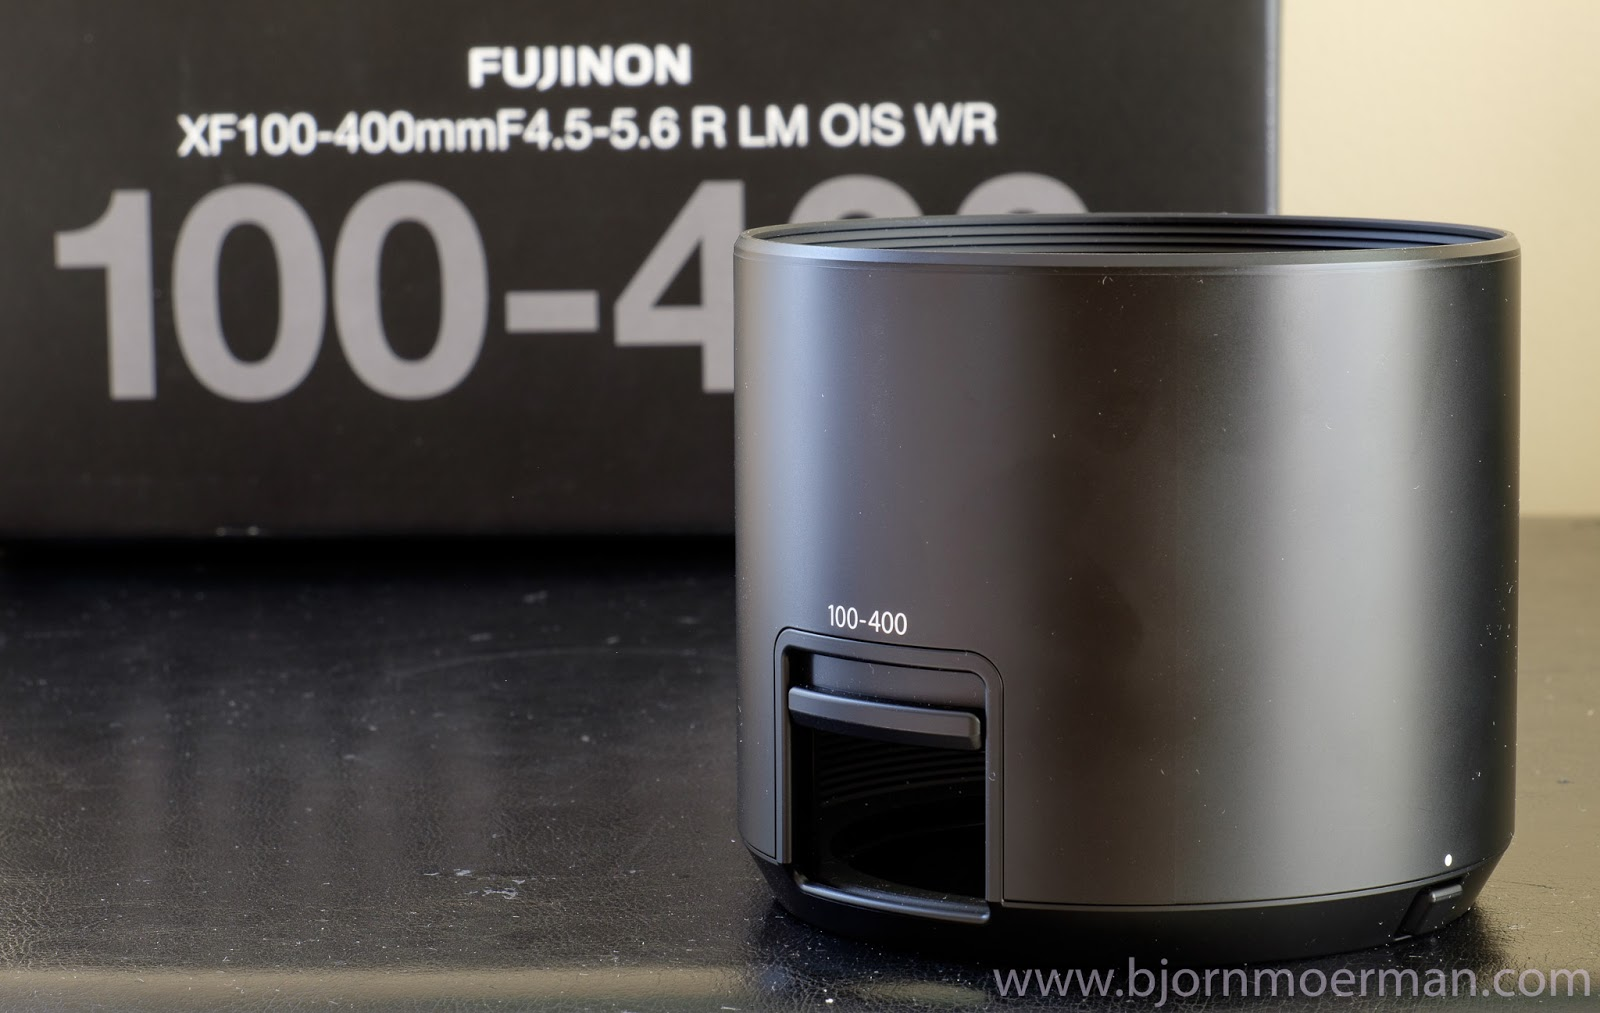 Bjrn Moerman Photography First Look Fujifilm Xf100 400 F45 56 R Fujinon Xf 100 400mm F 45 Lm Ois Wr For Those Familiar With The Canon It Looks Almost Identical I Does Have An Opening A Small Slide To Adjust Circular Polariser Without